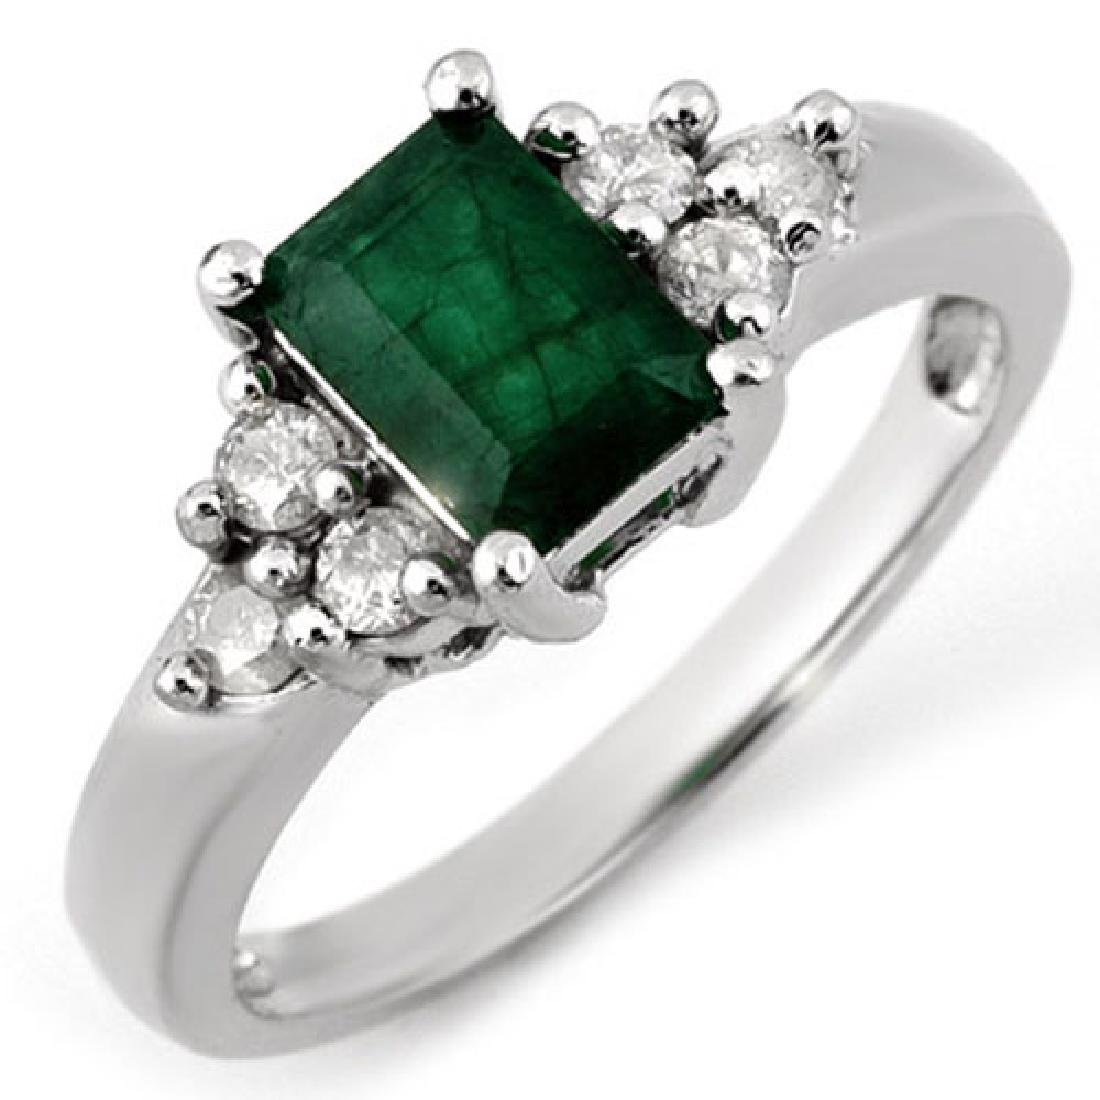 1.36 CTW Emerald & Diamond Ring 10K White Gold